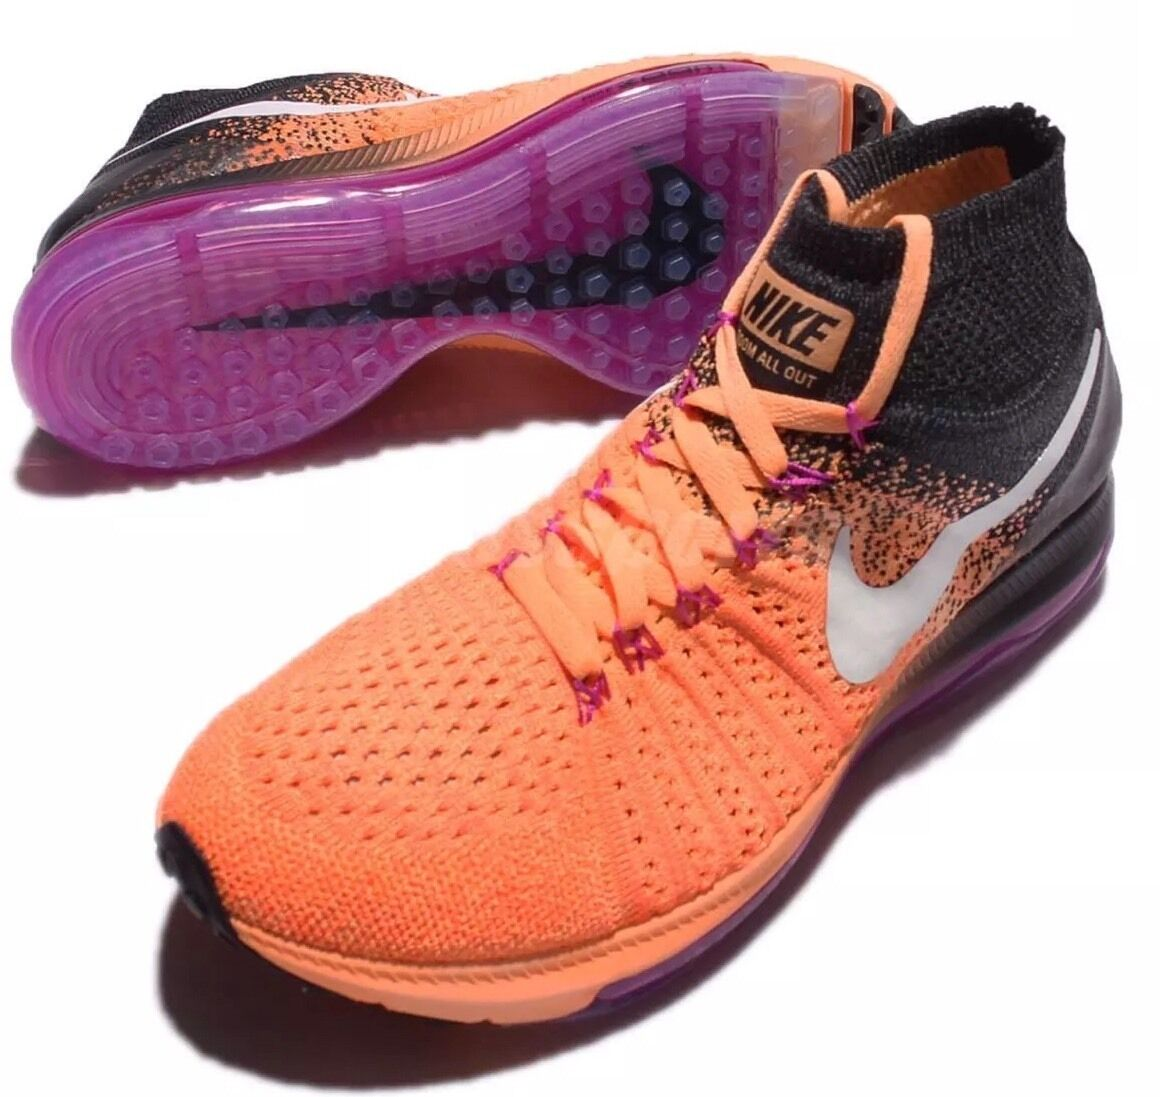 Nike Mujer Zoom All Out Flyknit Zapatillas UK 6.5 Eur 40.5 US 9